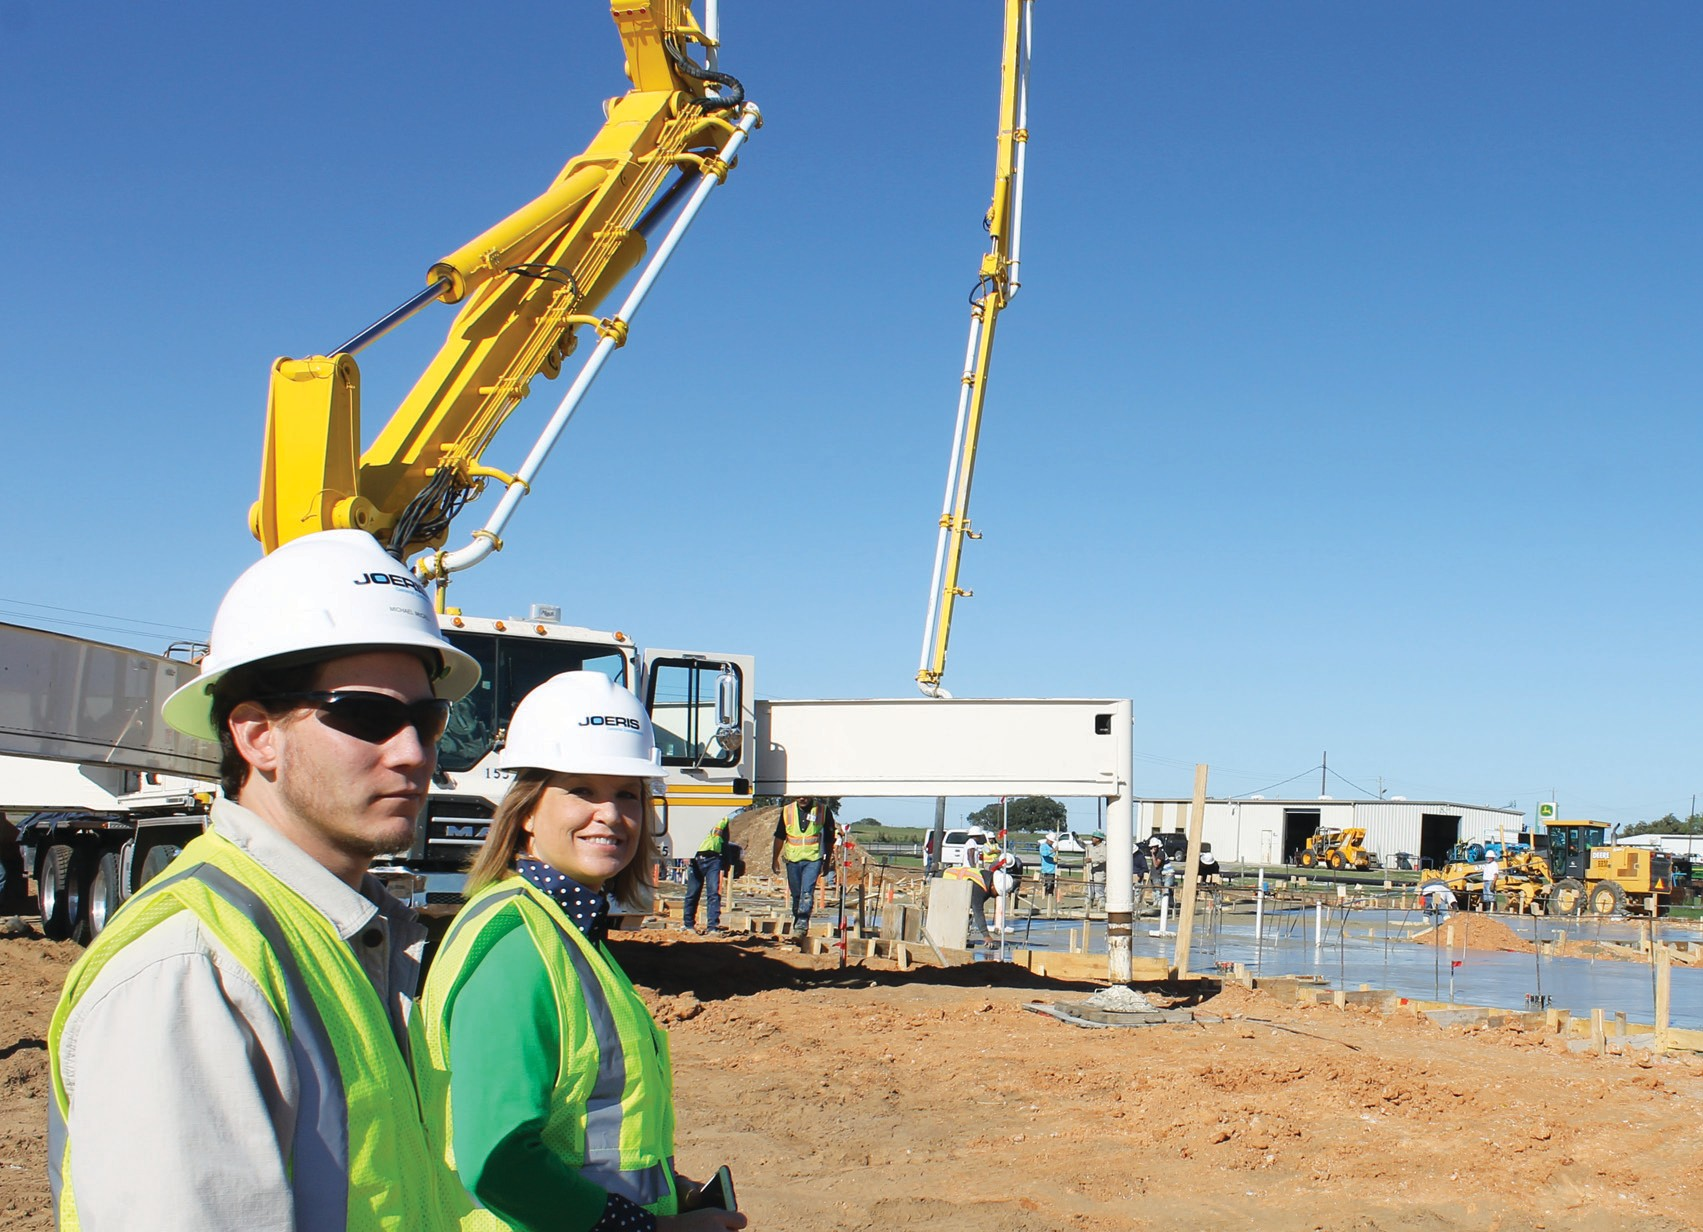 LEON ZABAVA   PLEA SANTON EXPRE Michael McCall, Joeris project manager, and Lorene Tullos, P.I.S.D. director of career and technical education, at the agricultural facility job site.